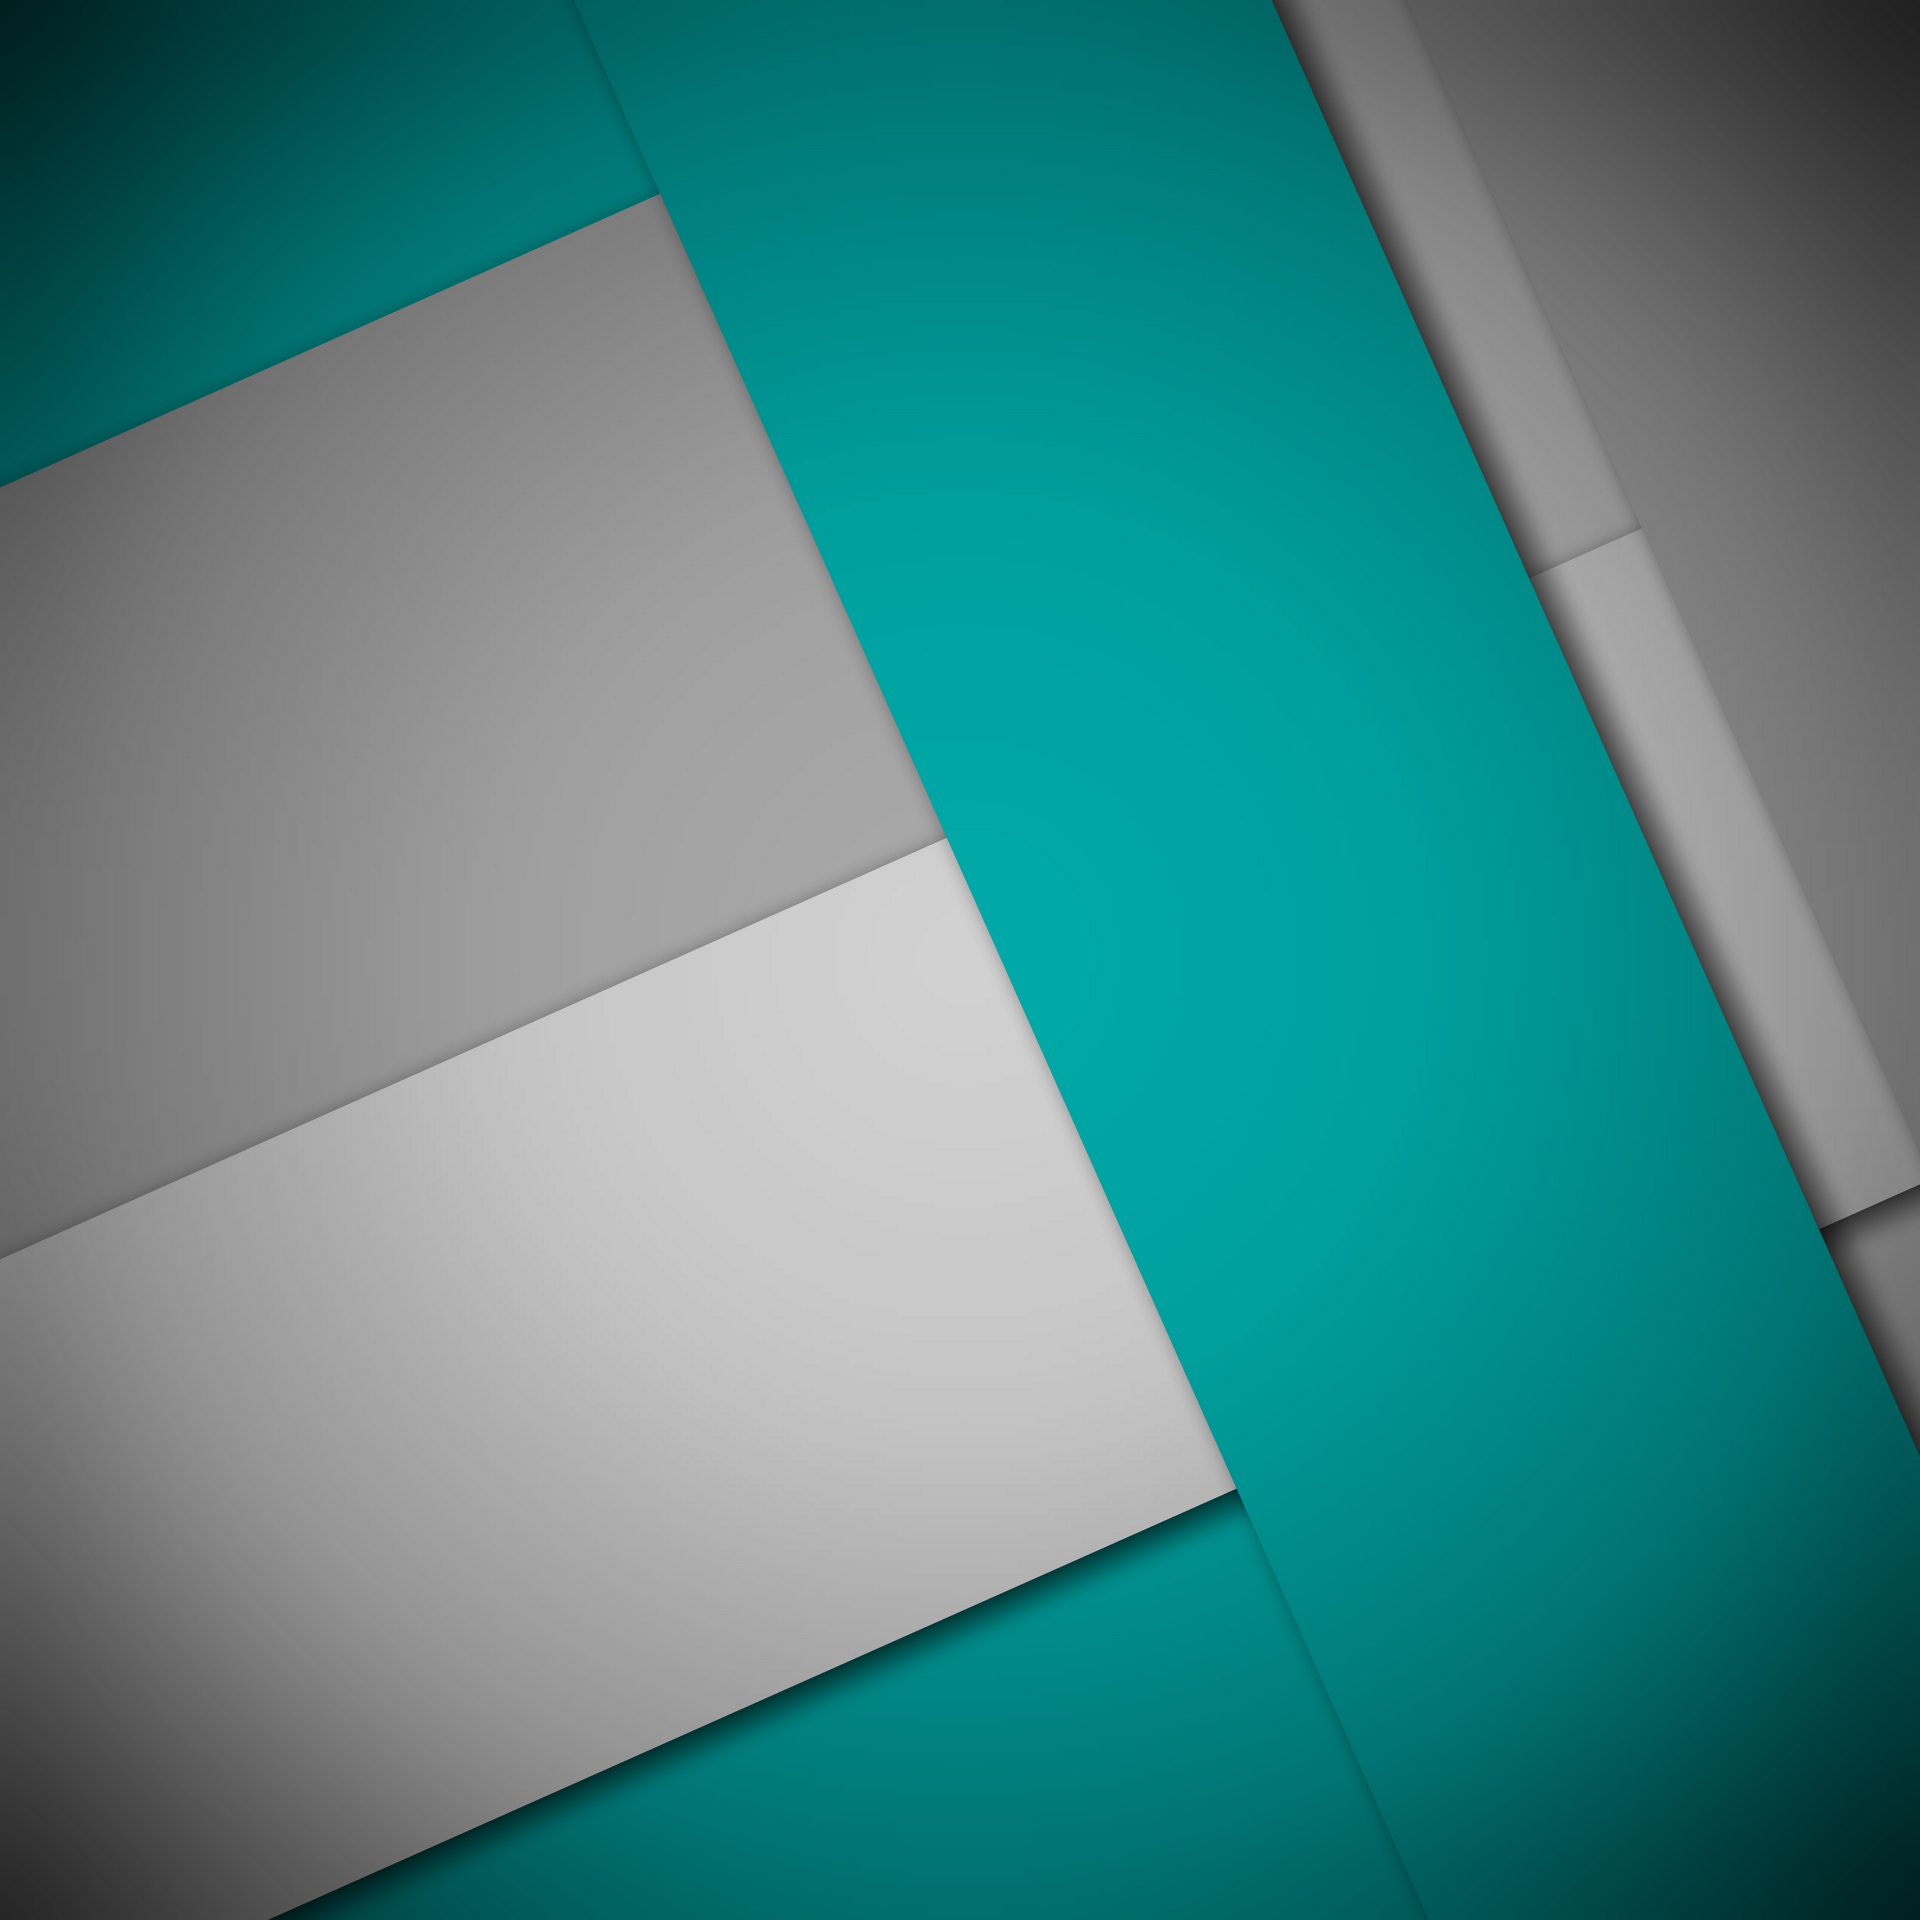 Right click on any design to download - Material Design Hd Wallpaper No 0194